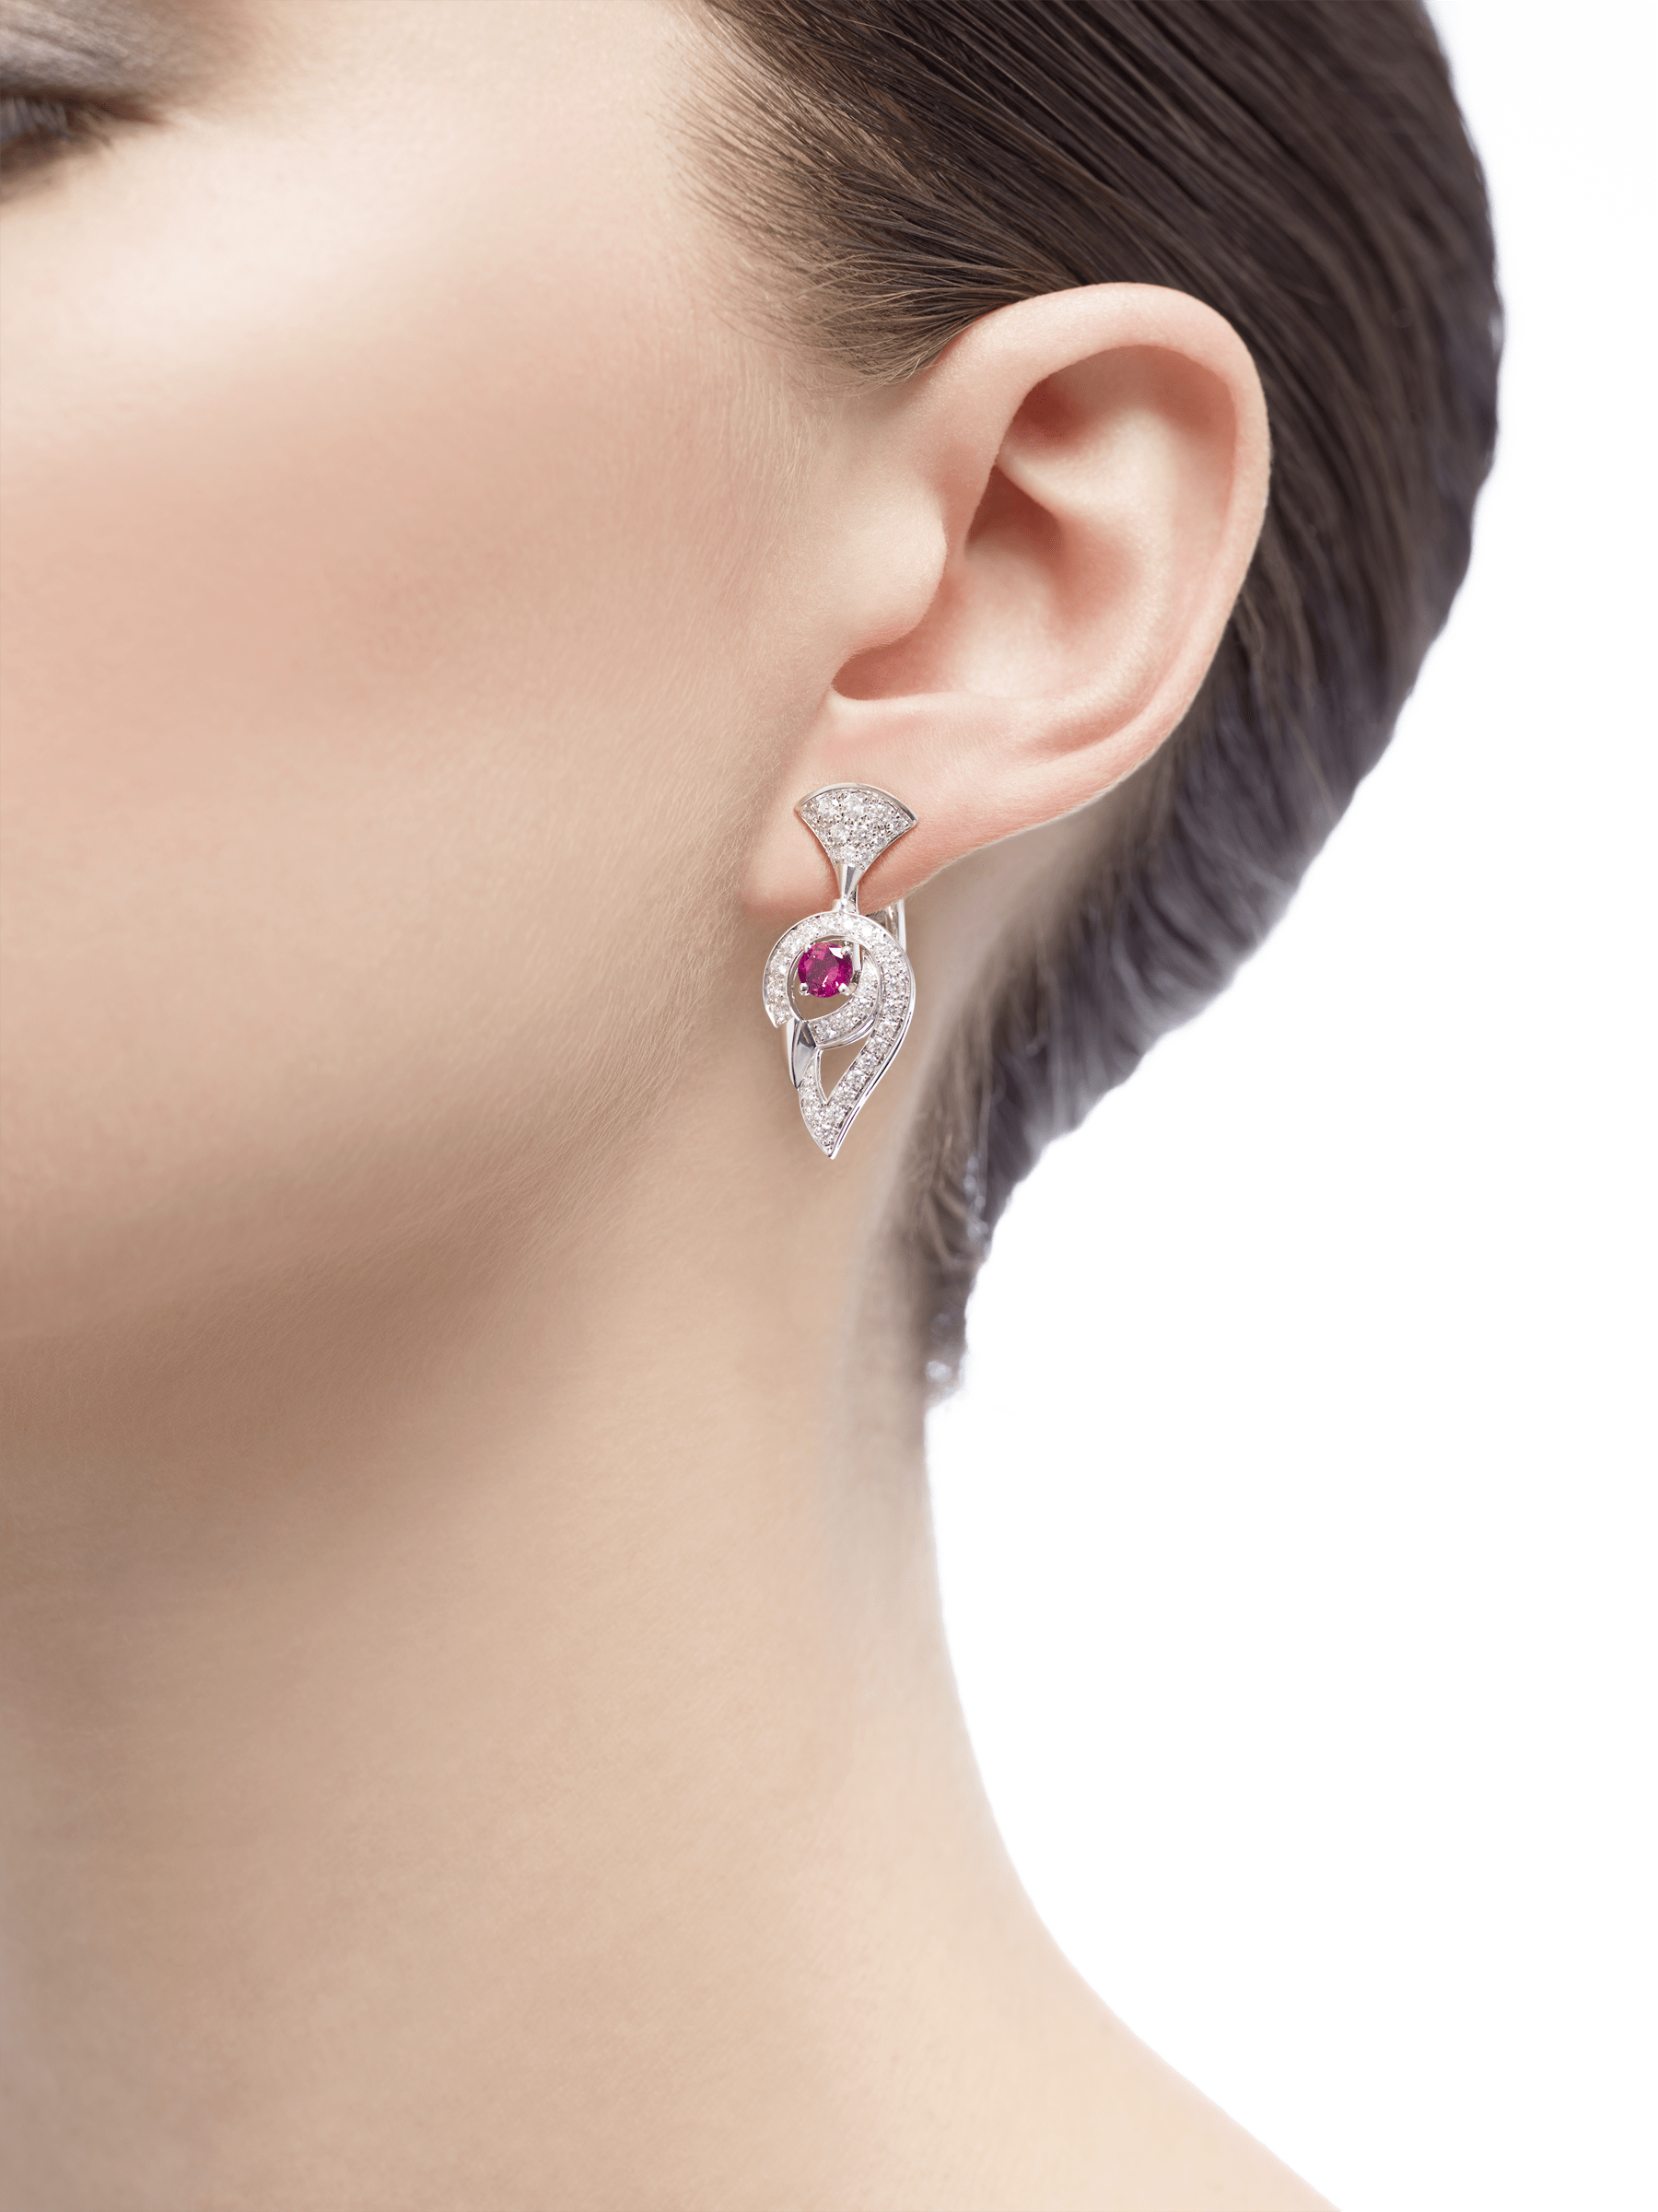 DIVAS' DREAM earrings in 18 kt white gold set with pink rubellite (0.75 ct) and pavé diamonds (1.10 ct). 354082 image 4